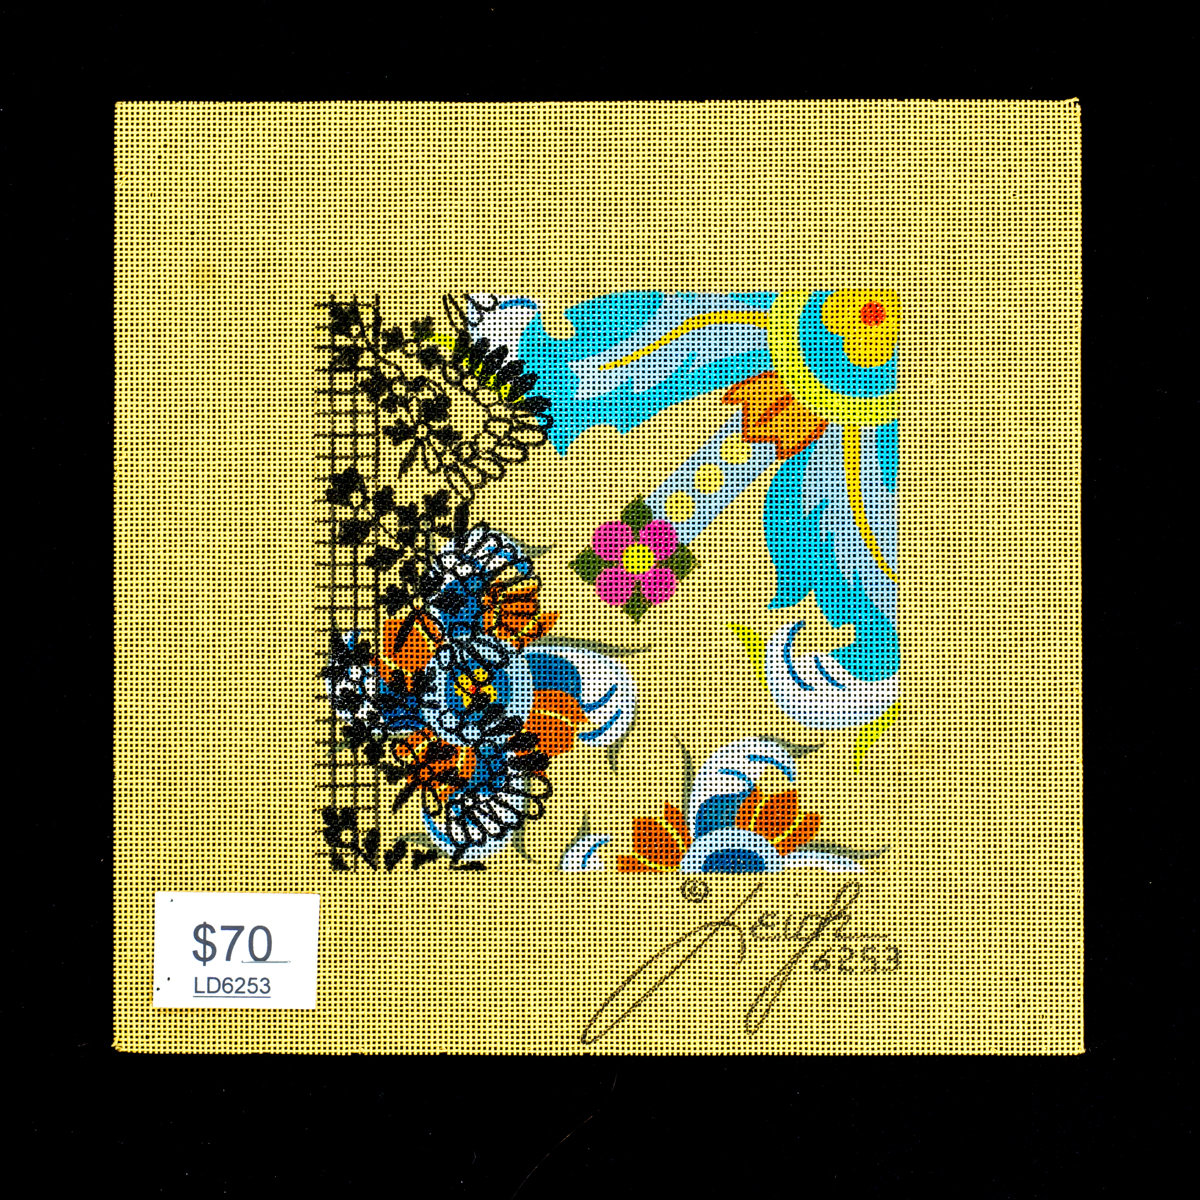 Leigh Designs, Floral on yellow canvas, LD6253